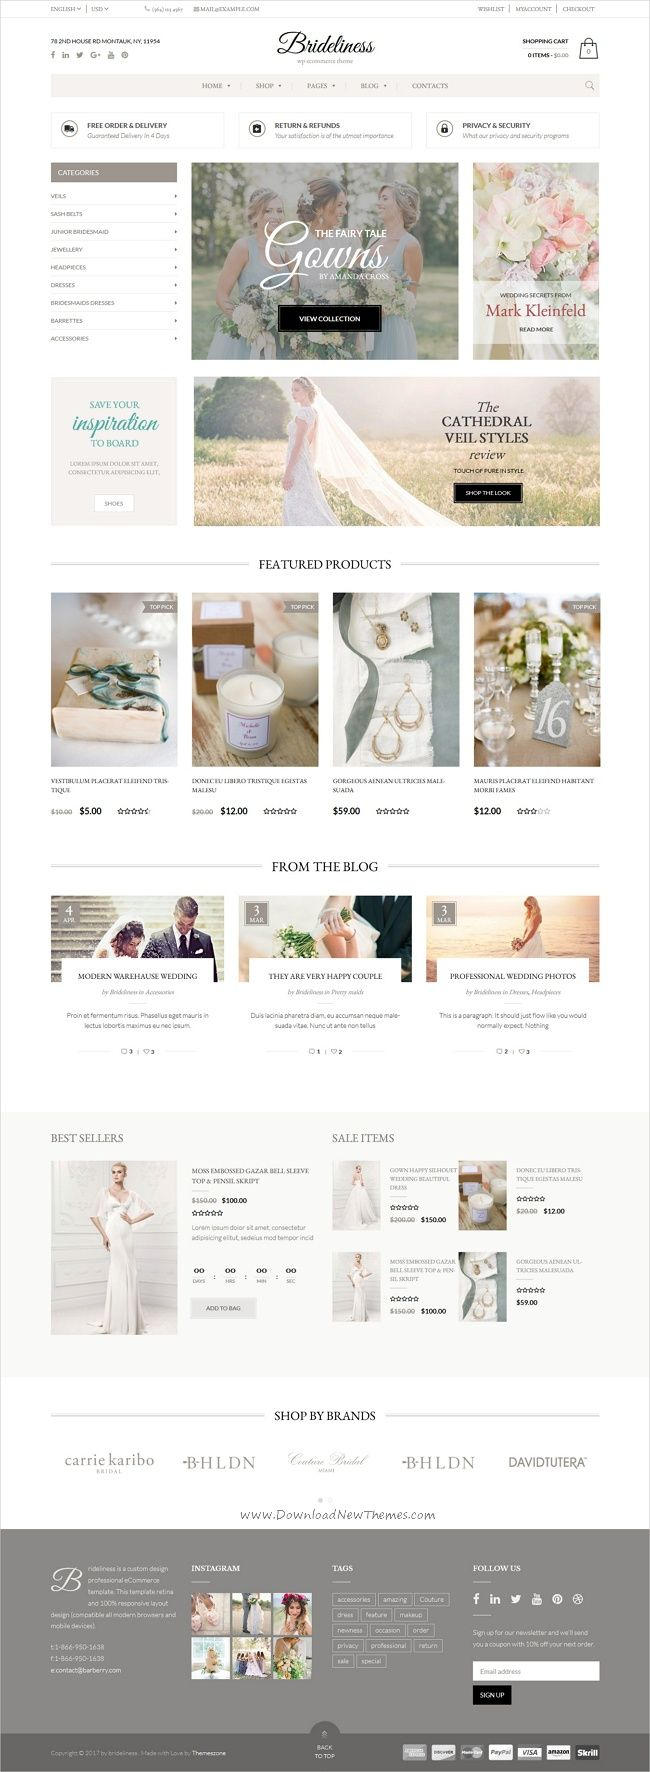 Brideliness is a stylish responsive 5in1 WooCommerce #WordPress theme for stunning #wedding / #bridal shop #eCommerce website download now➩ https://themeforest.net/item/brideliness-wedding-shop-woocommerce-theme/19535925?ref=Datasata